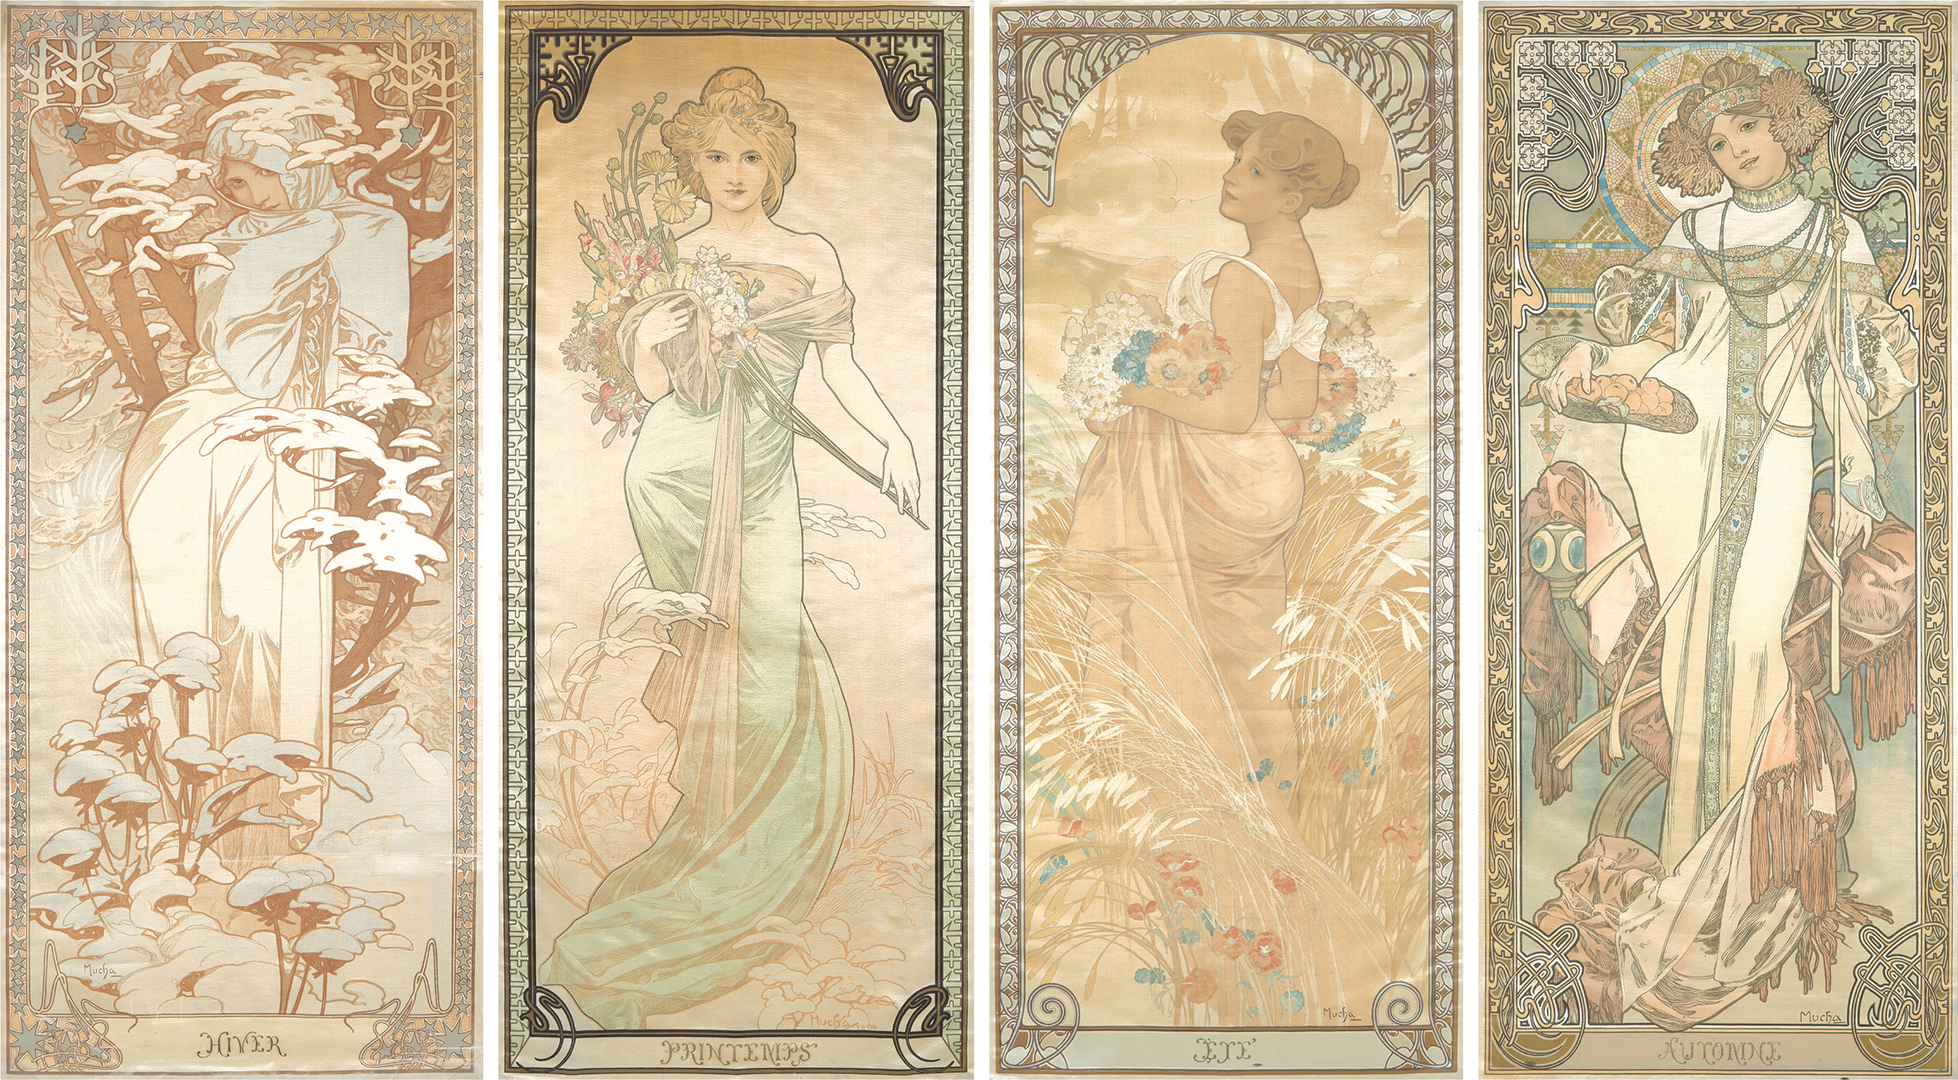 359. The Seasons 1900 – On Silk. ($57,600)